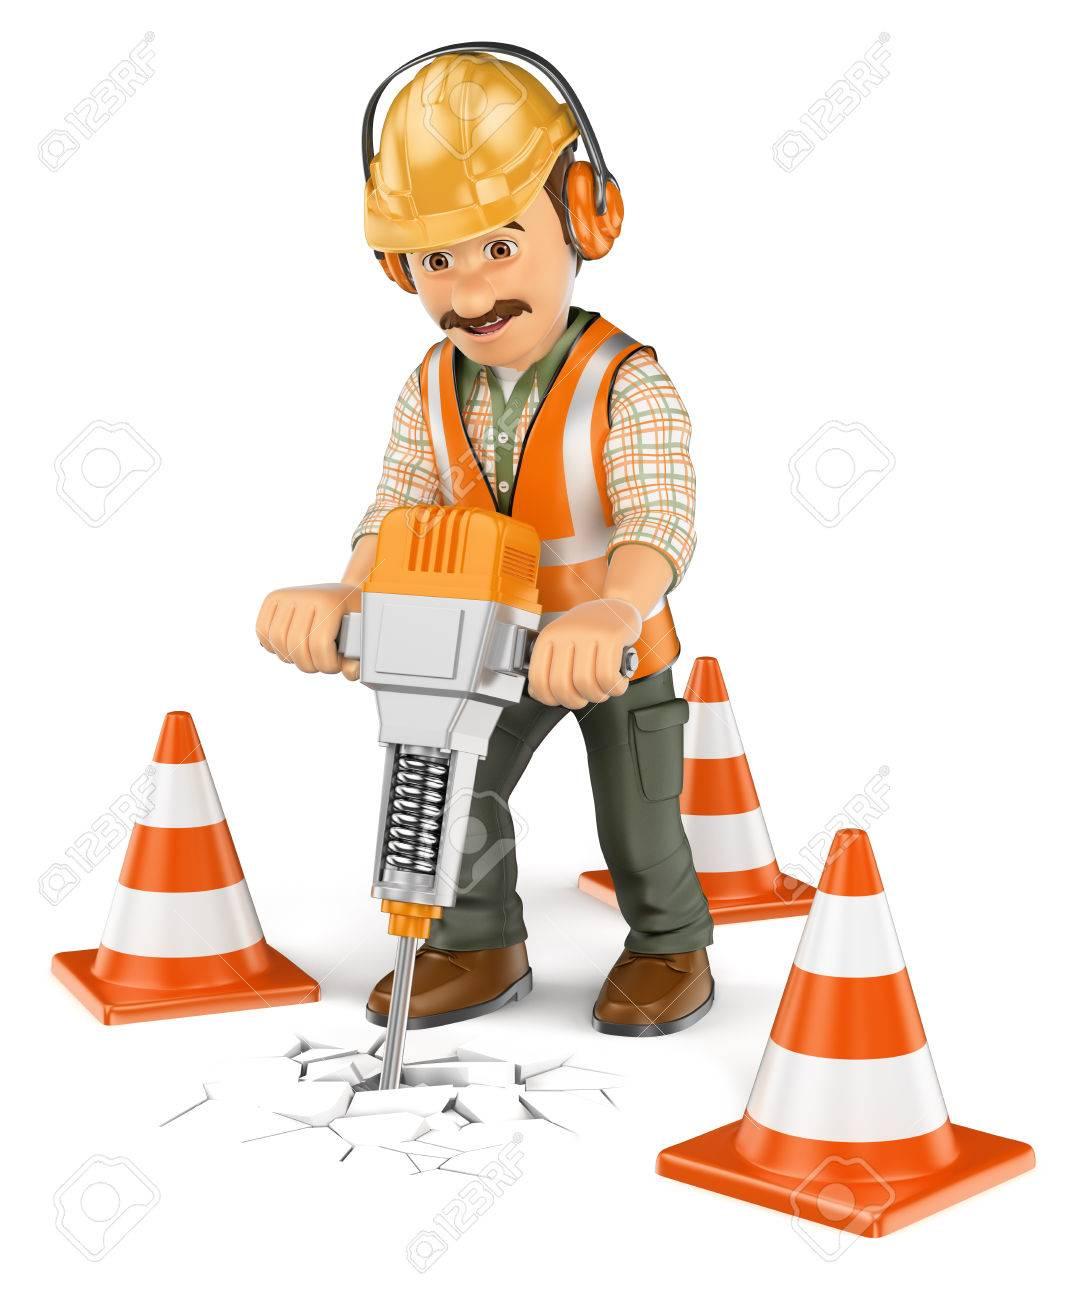 construction worker stock vector illustration and royalty construction worker 3d working people construction worker a handheld hydraulic breaker isolated